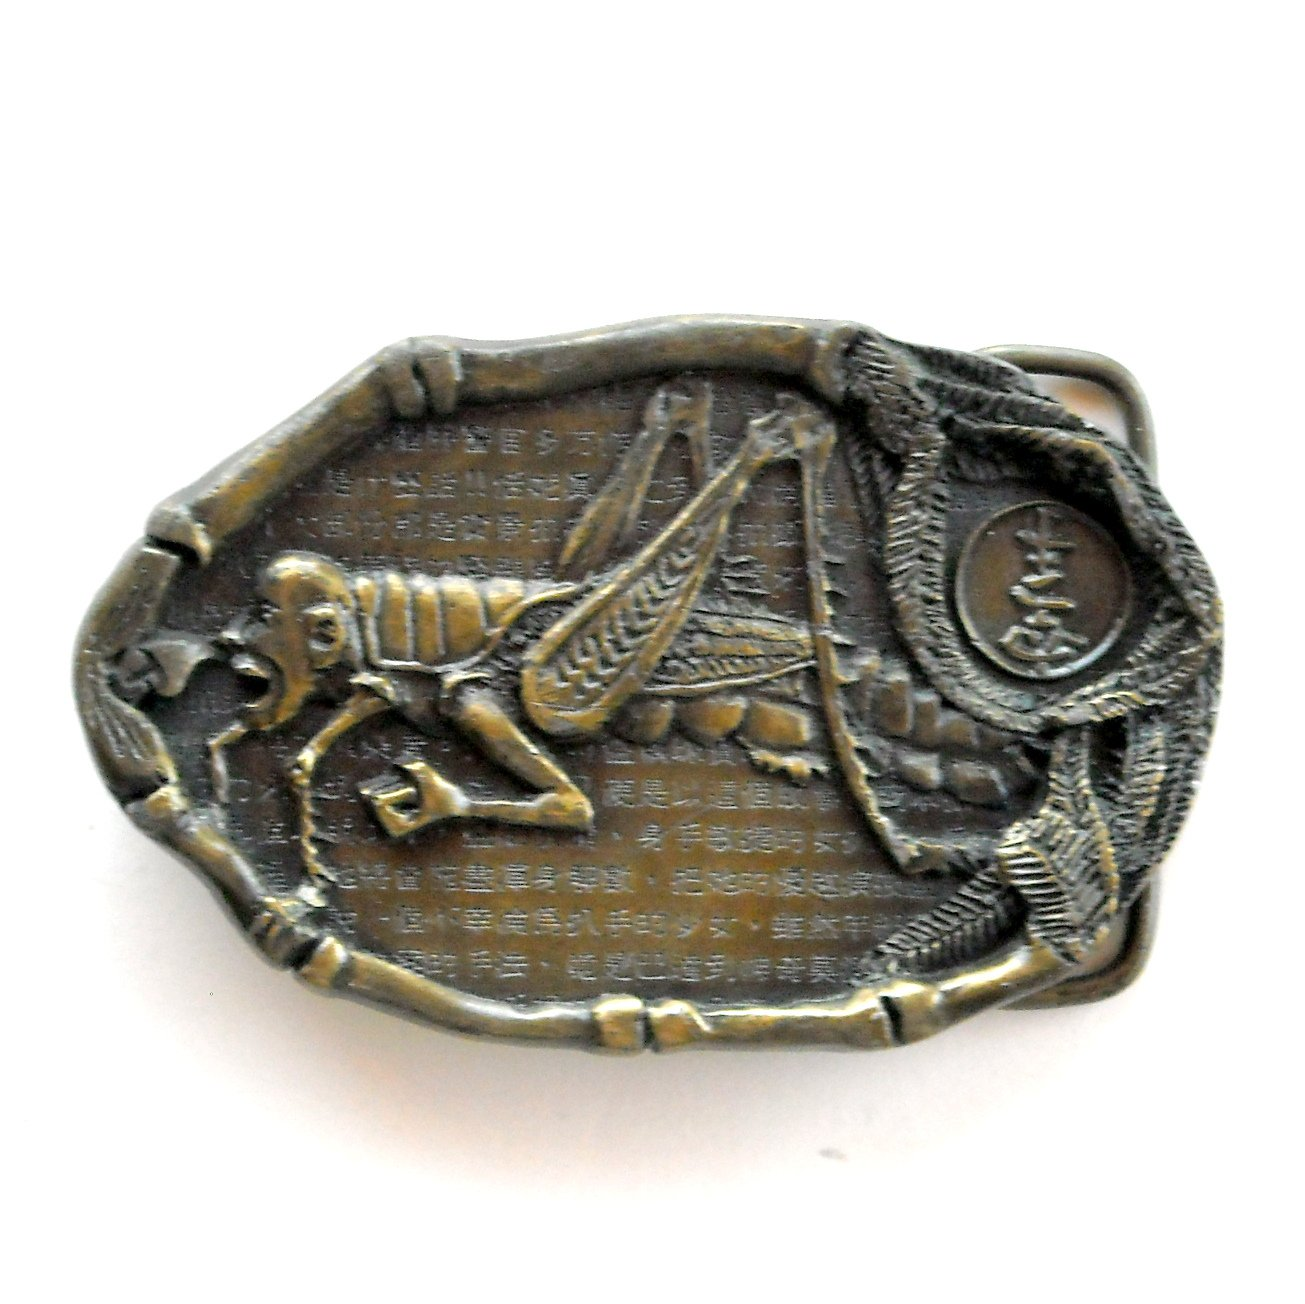 The Grasshopper Vintage Bergamot Brass Belt Buckle